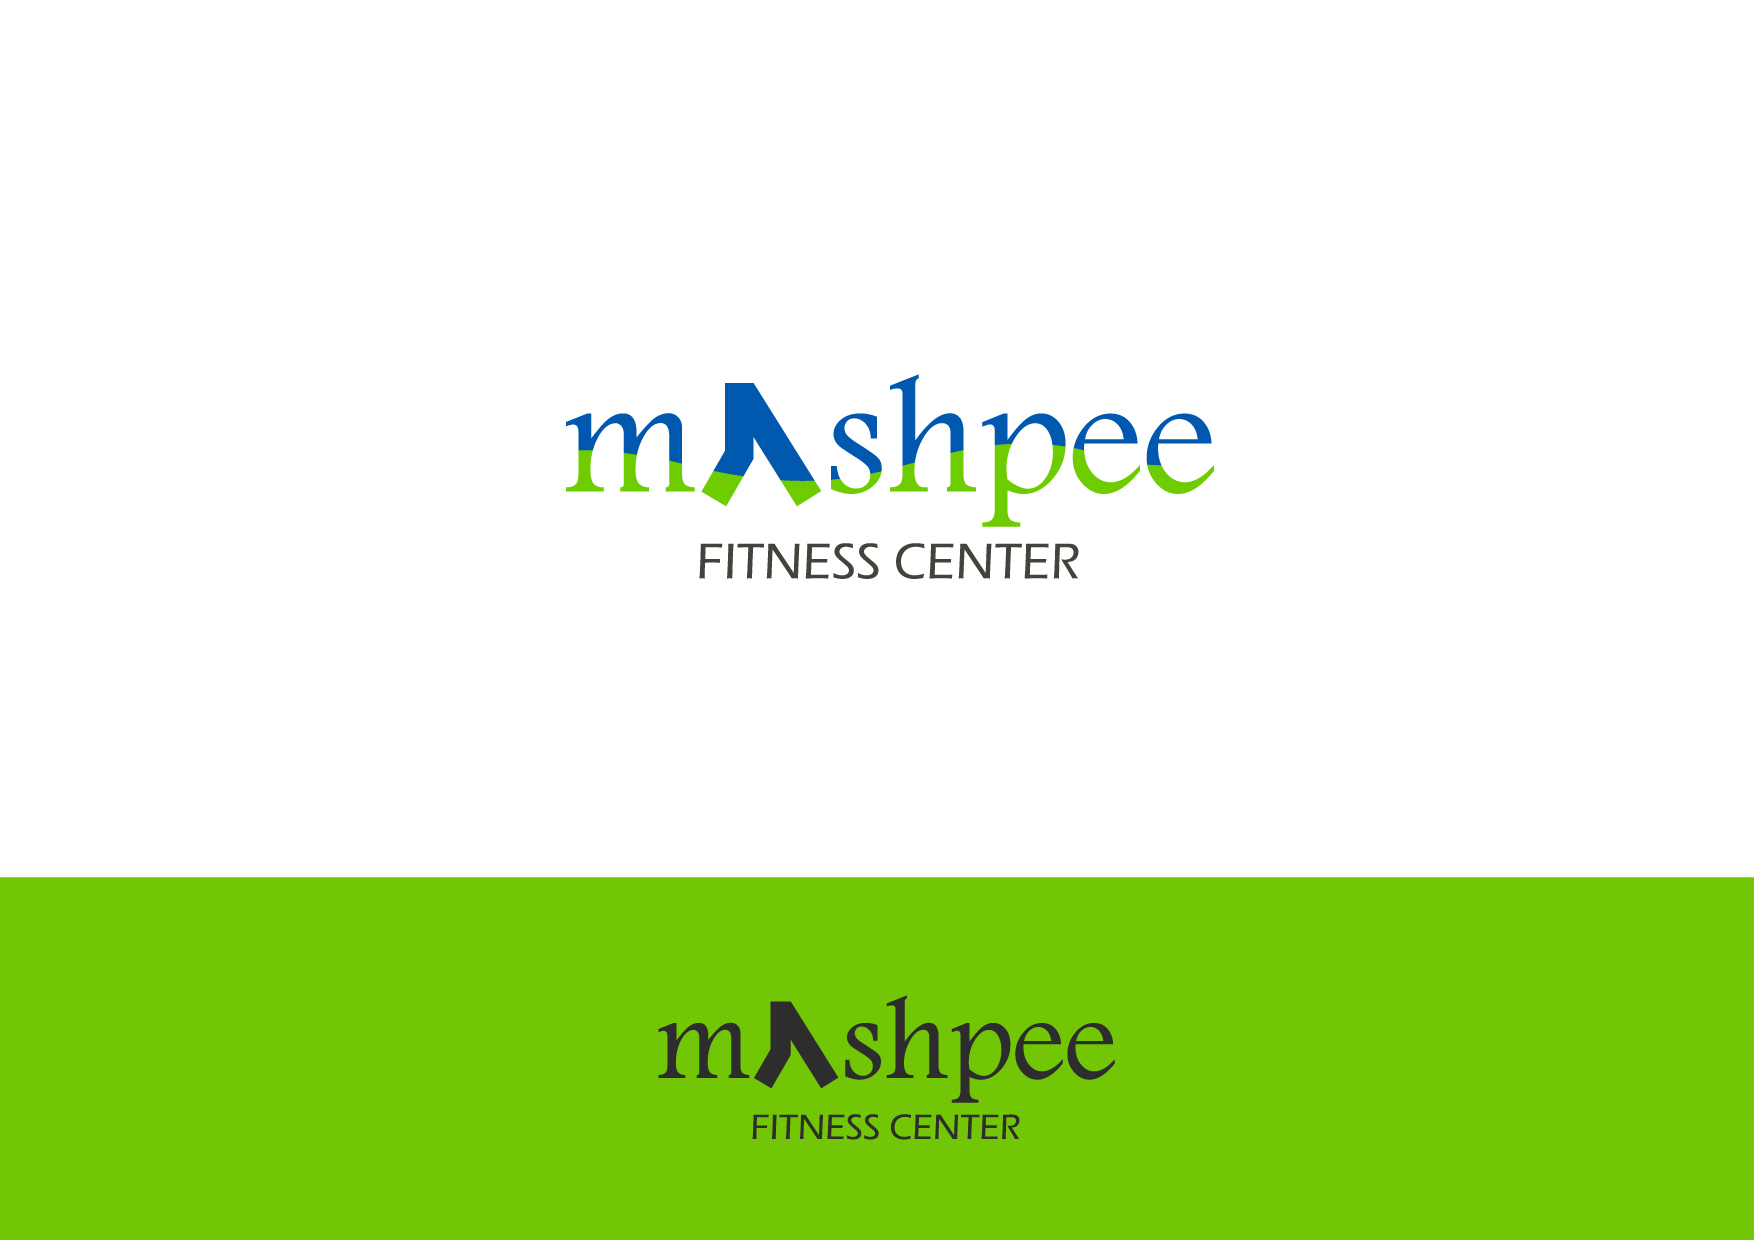 Logo Design by Osi Indra - Entry No. 32 in the Logo Design Contest New Logo Design for Mashpee Fitness Center.